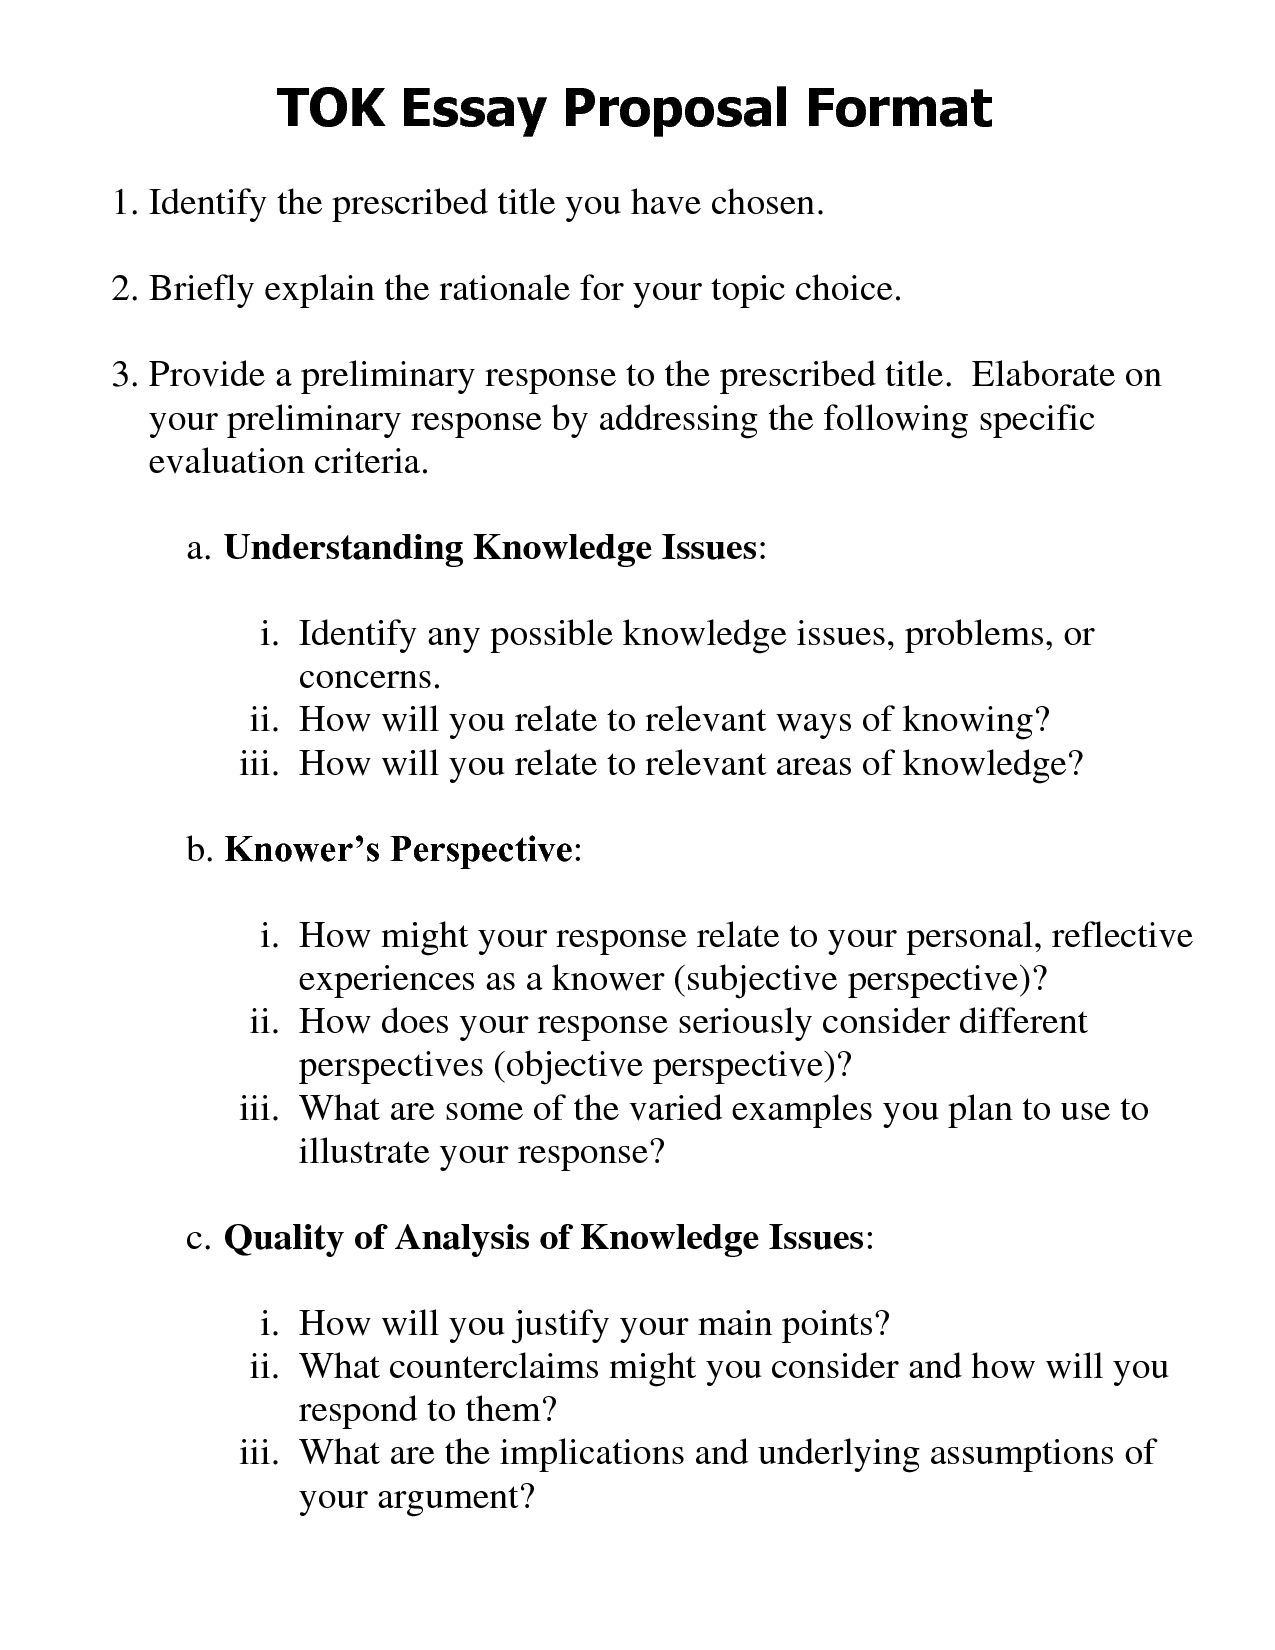 the hobbit essay essays on the hobbit tolkien essays middle earth  example essay format sample scholarship essay format essay formats example essay proposal paper essaywrite my thesis